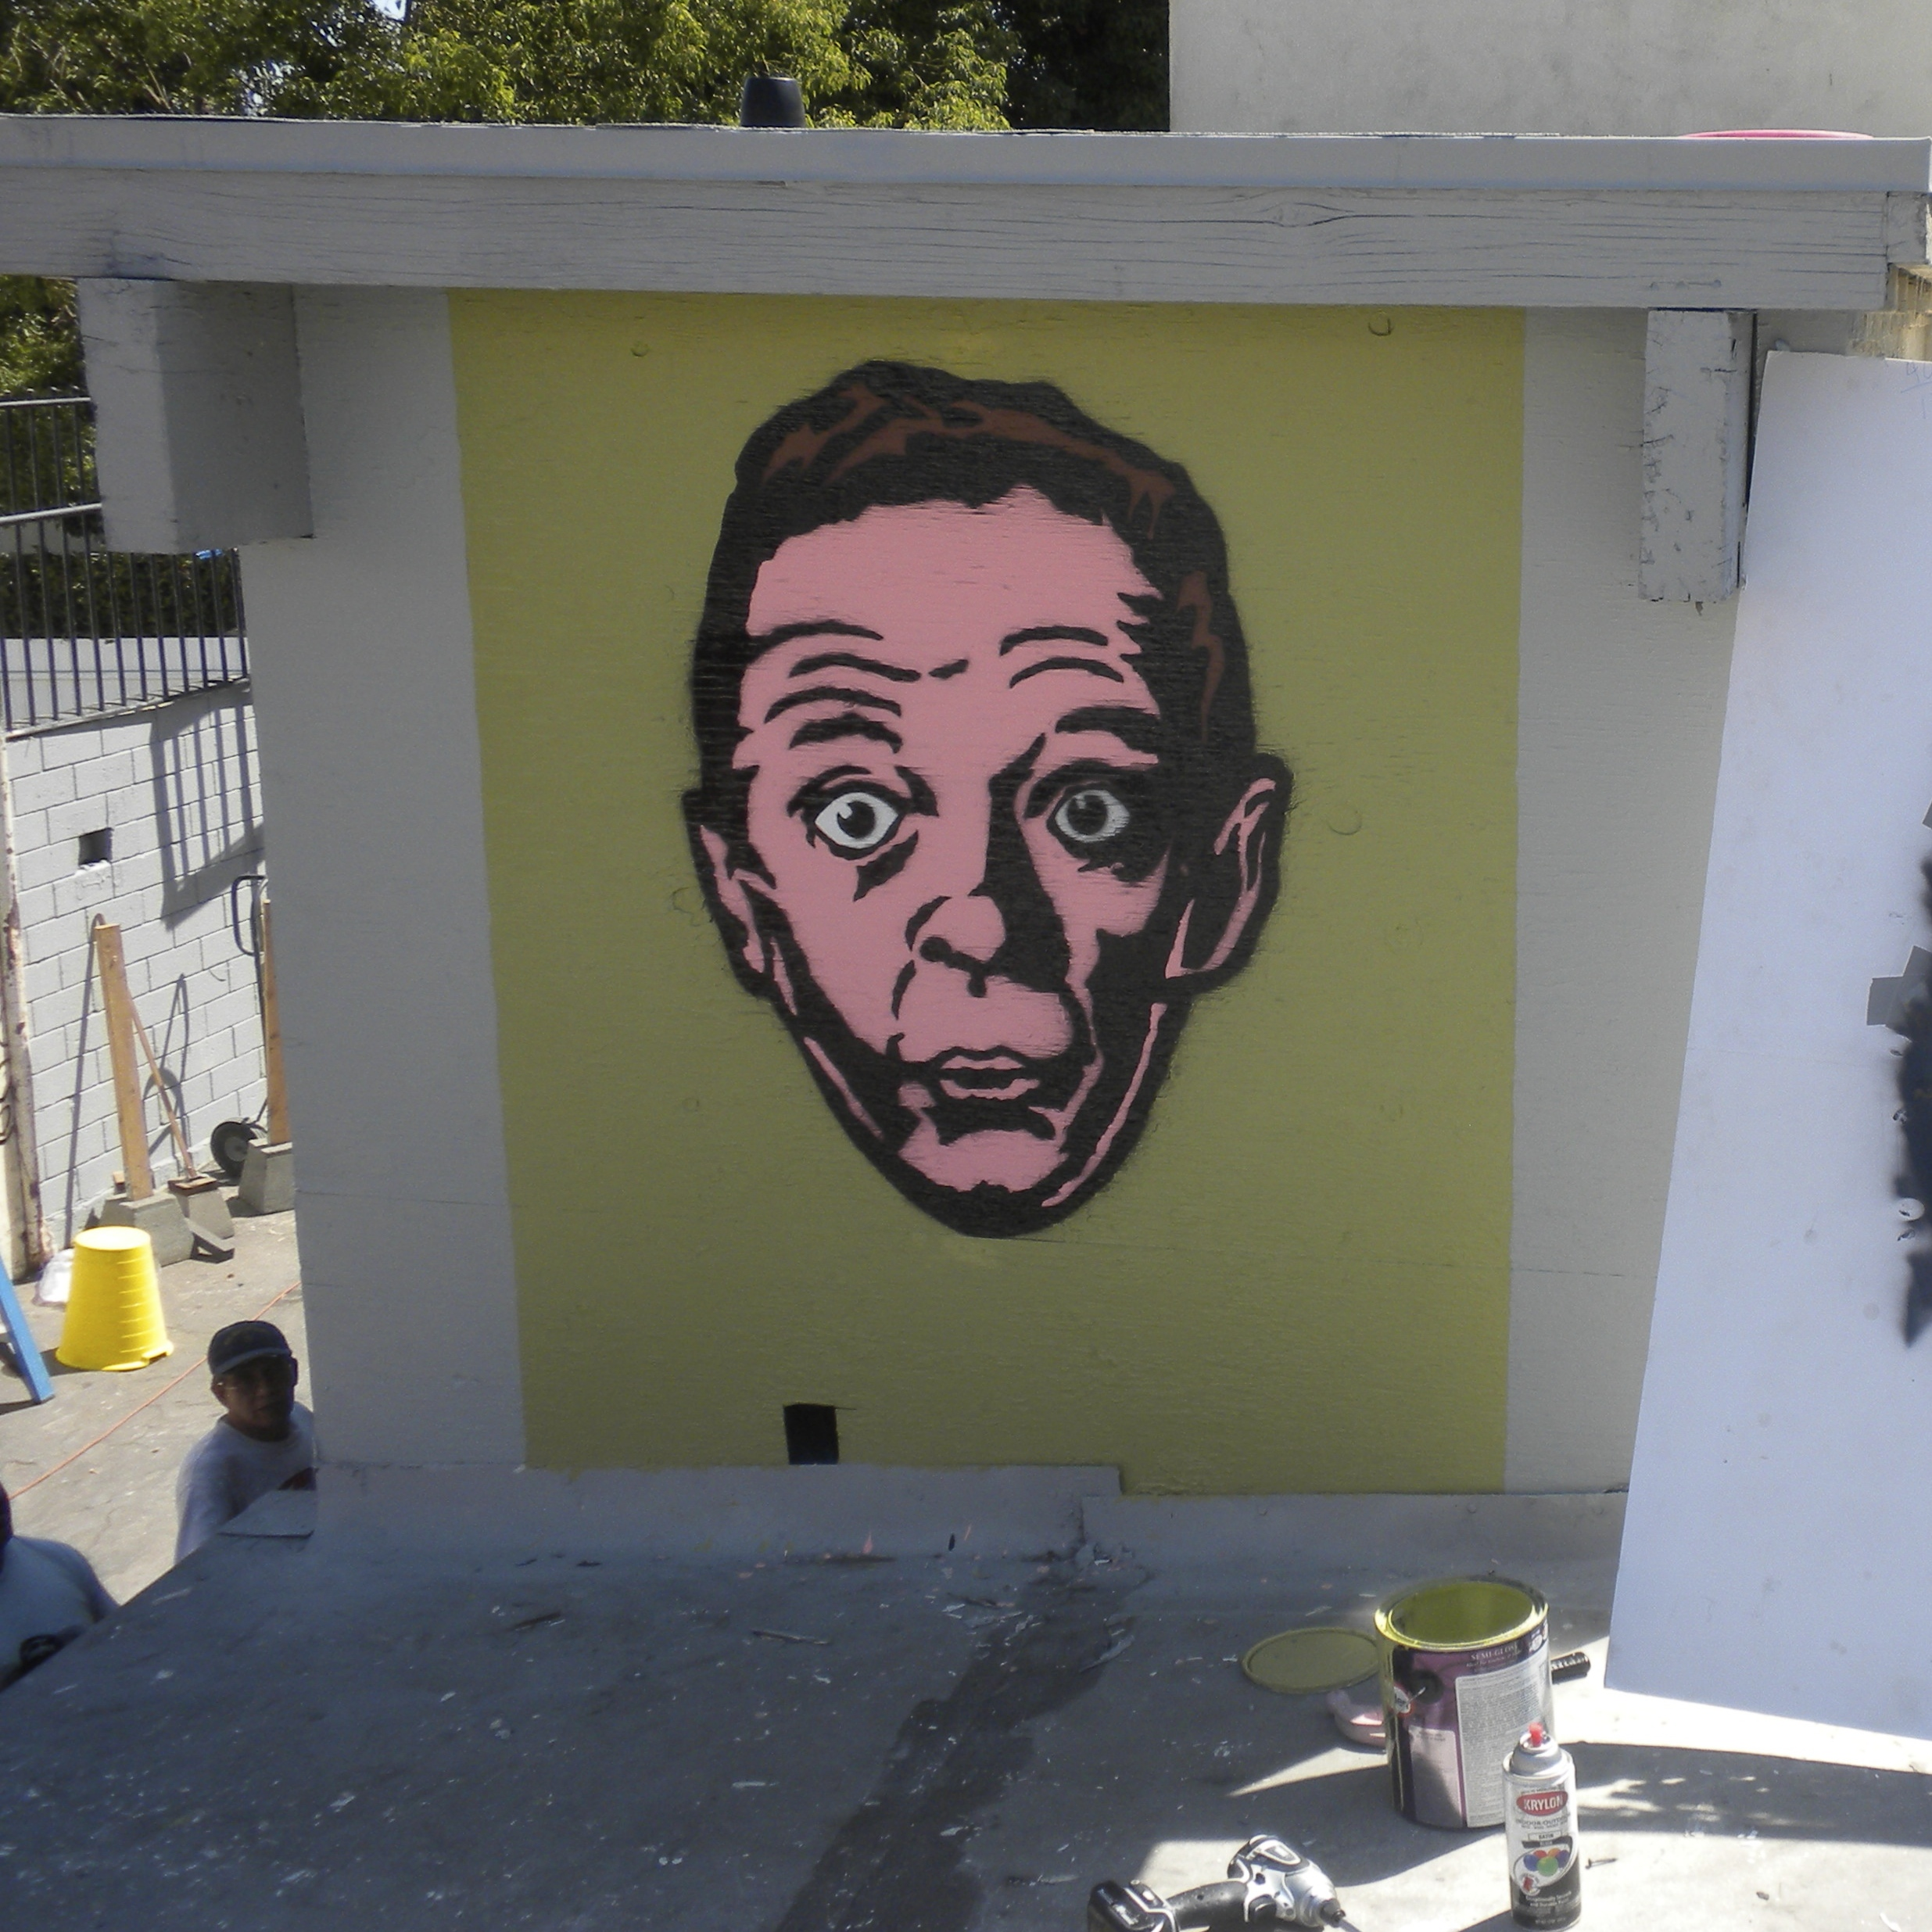 Don Knotts stencil in Echo Park (Los Angeles) CA.